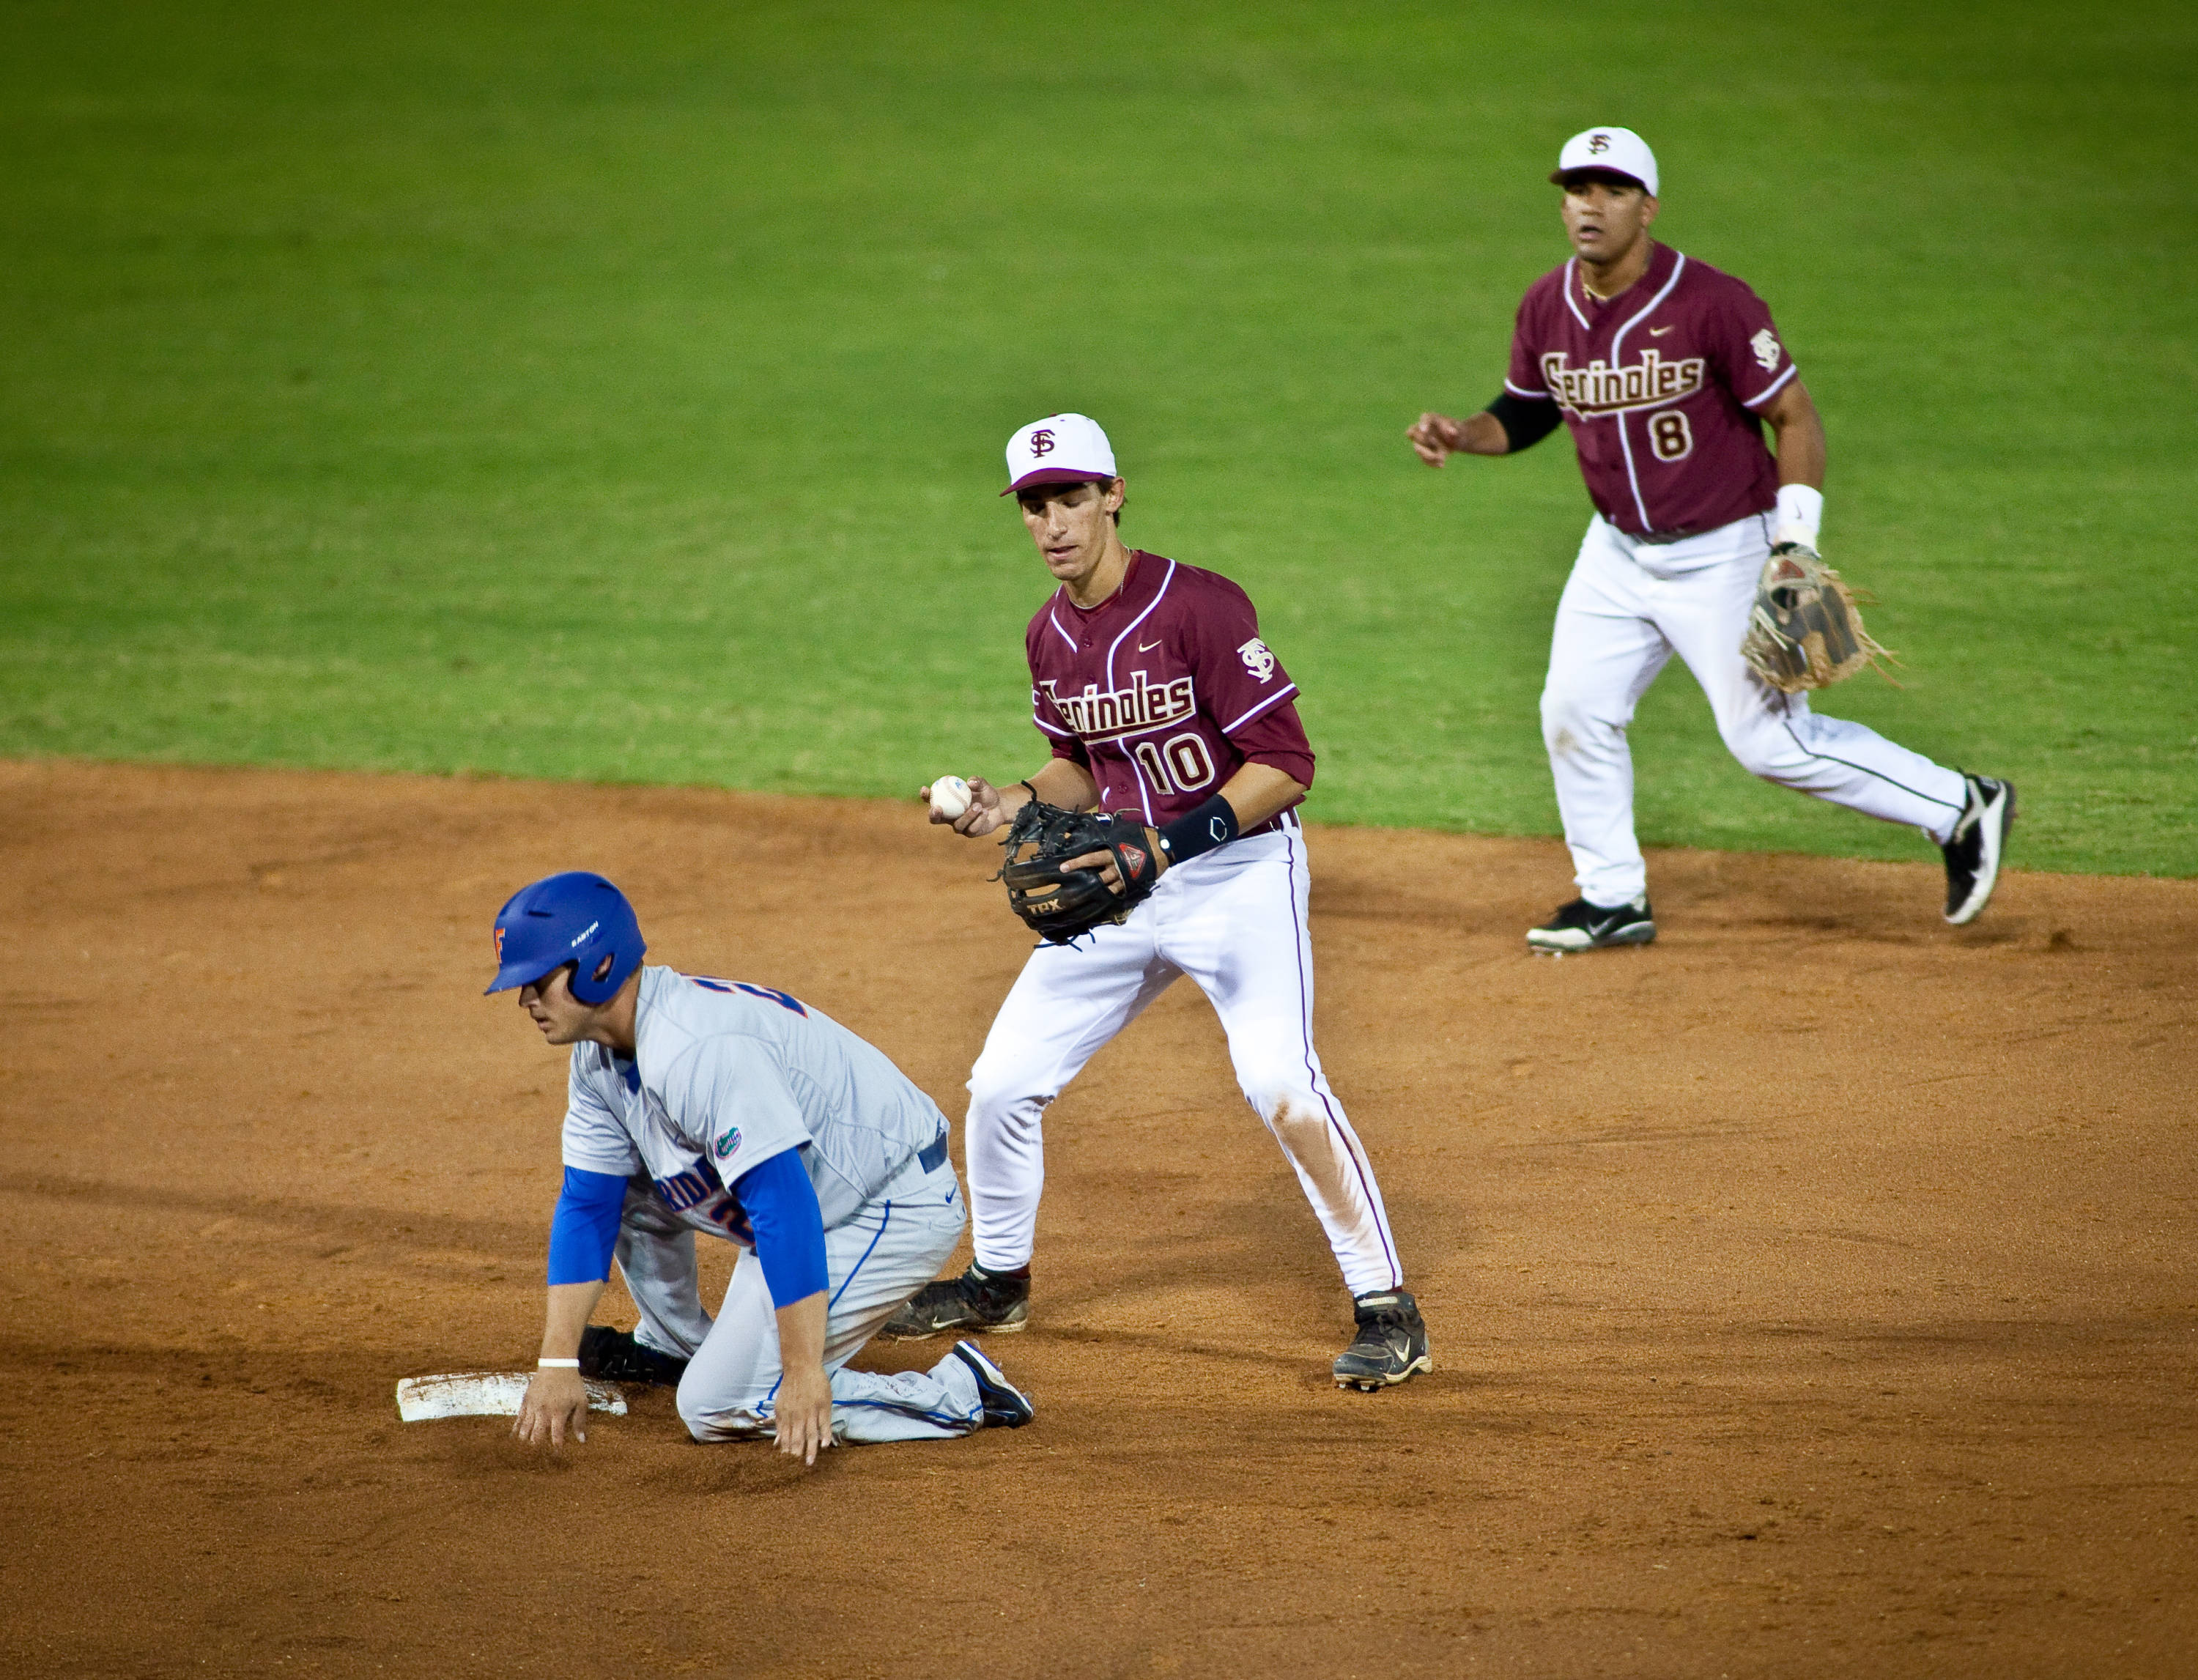 Devon Travis (8) to Justin Gonzalez (10) for the force out at 2nd